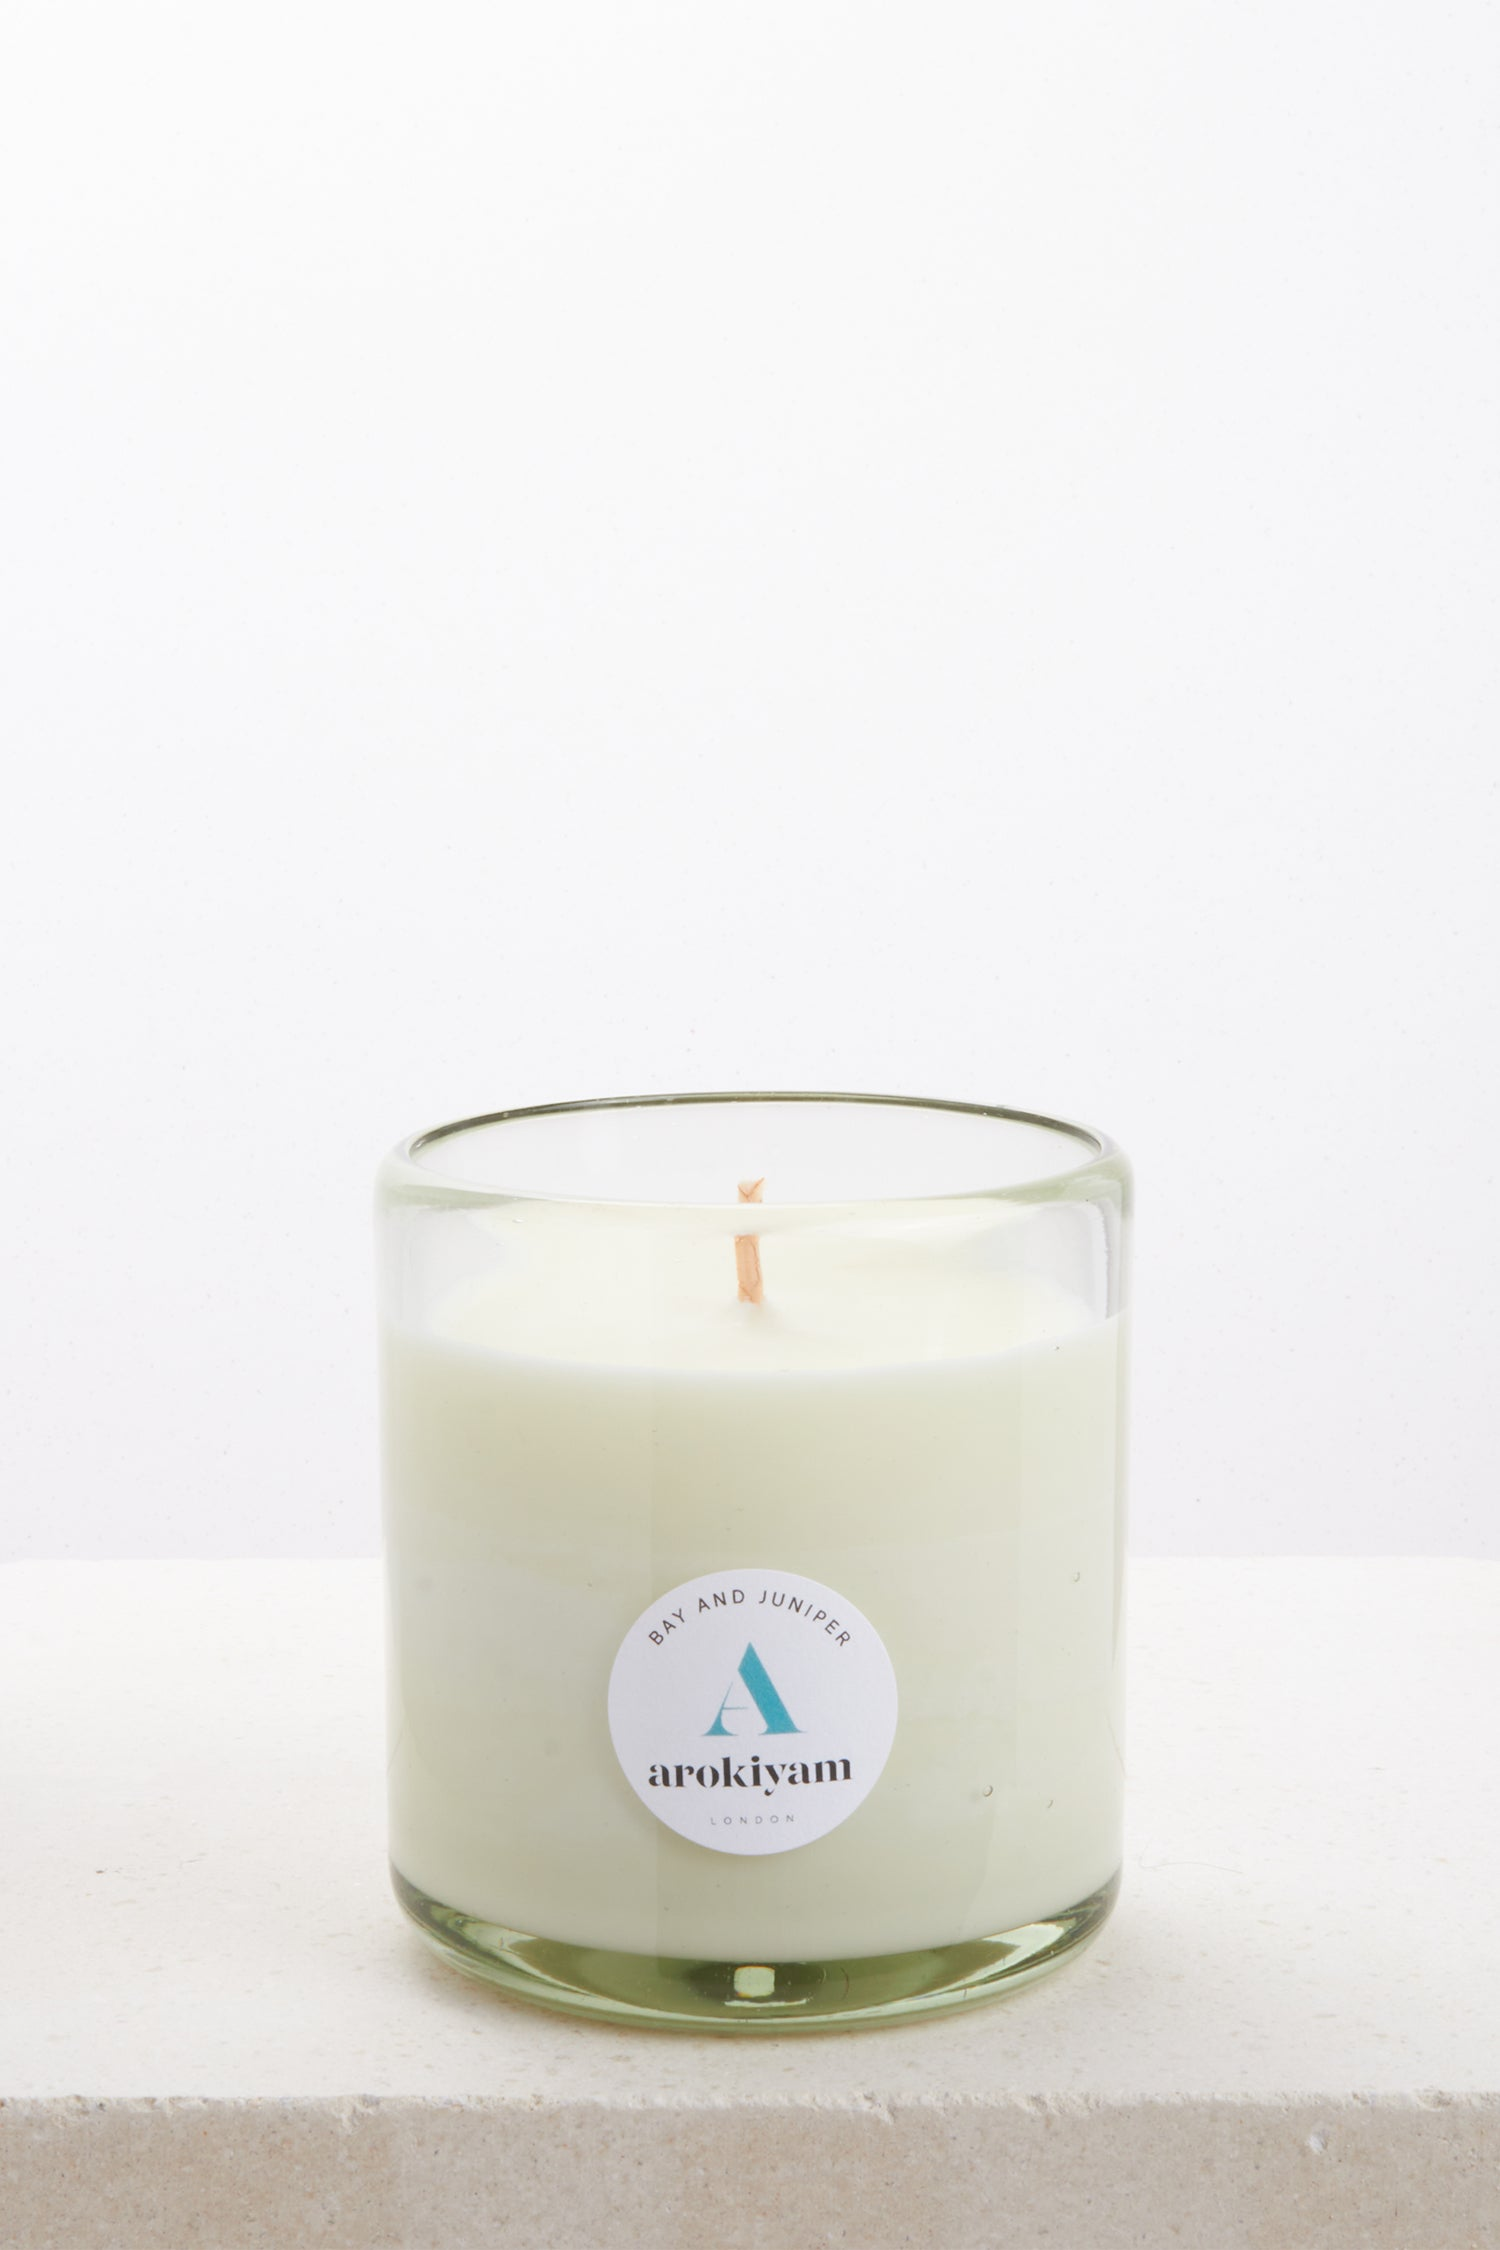 Vegan candle made from a coconut and soy wax and scented with natural bay and juniper. Made in London.